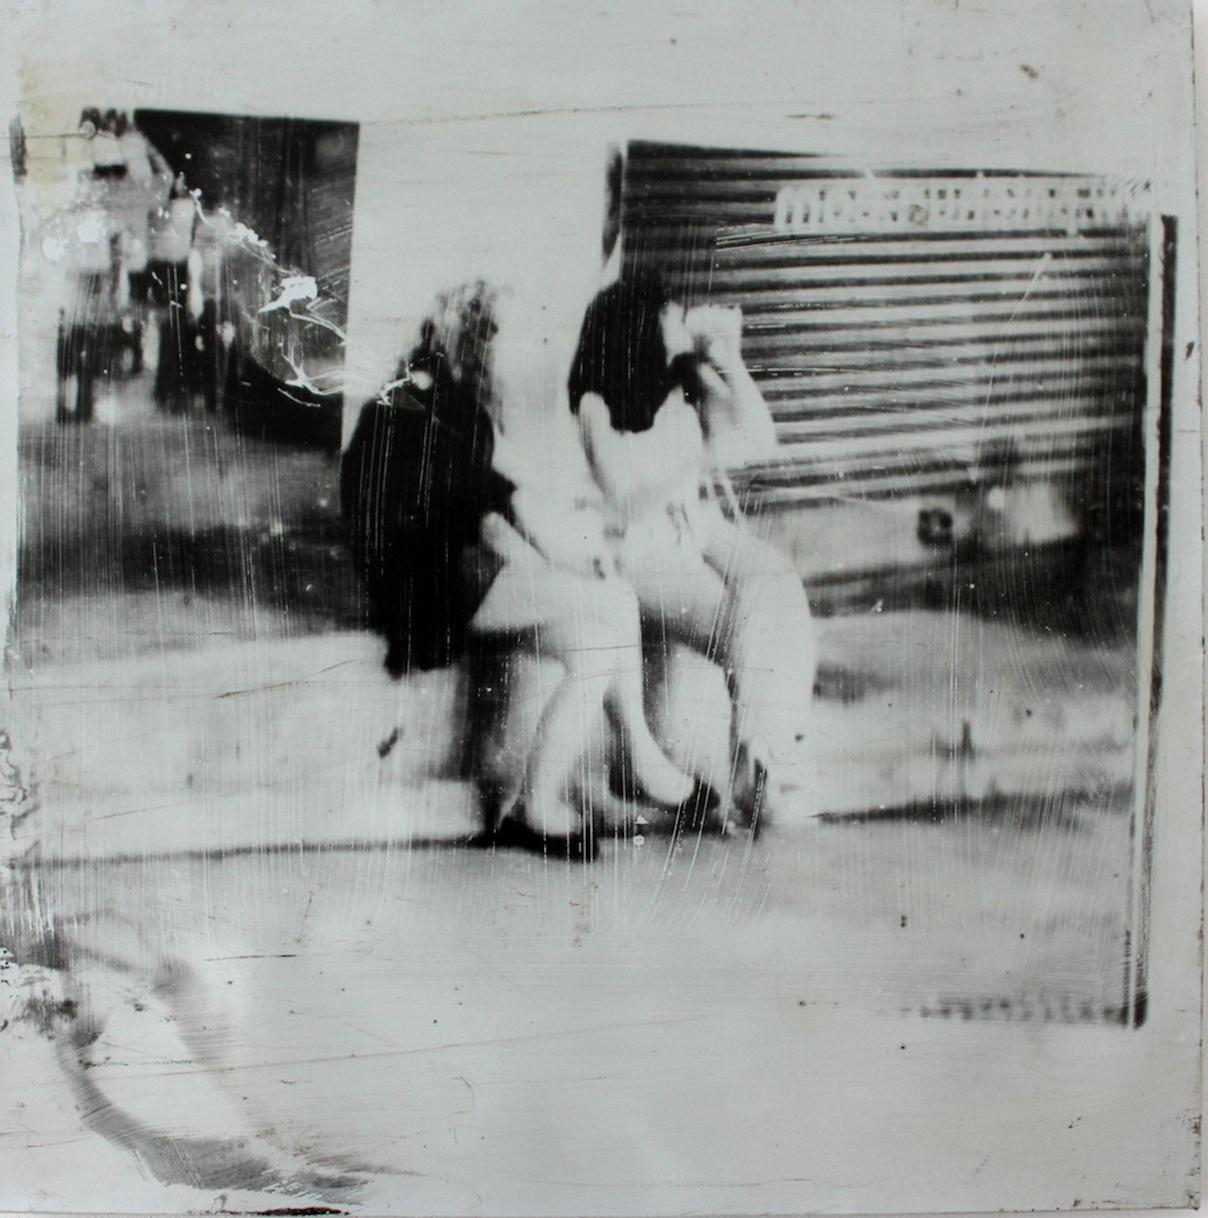 Hollywood Boulevard - 2108 - 78 x 79 cm - Photo emulsion sur metal